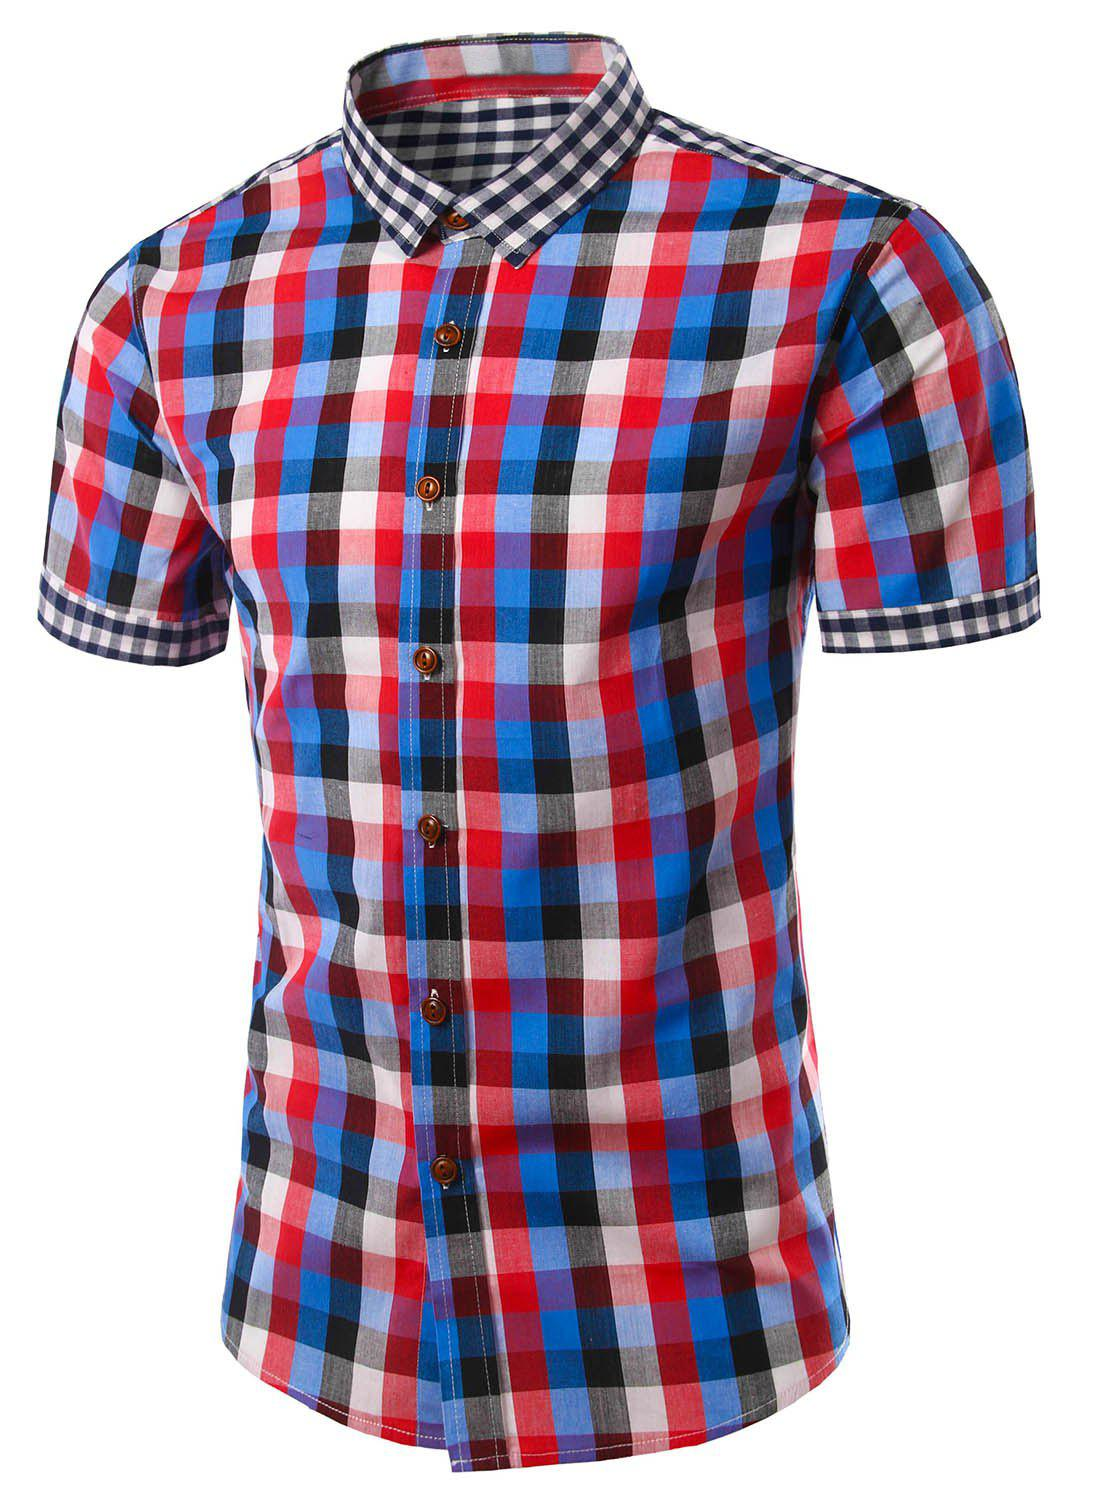 Slim Fit Turn Down Collar Plaid Short Sleeves Shirts For Men - RED L